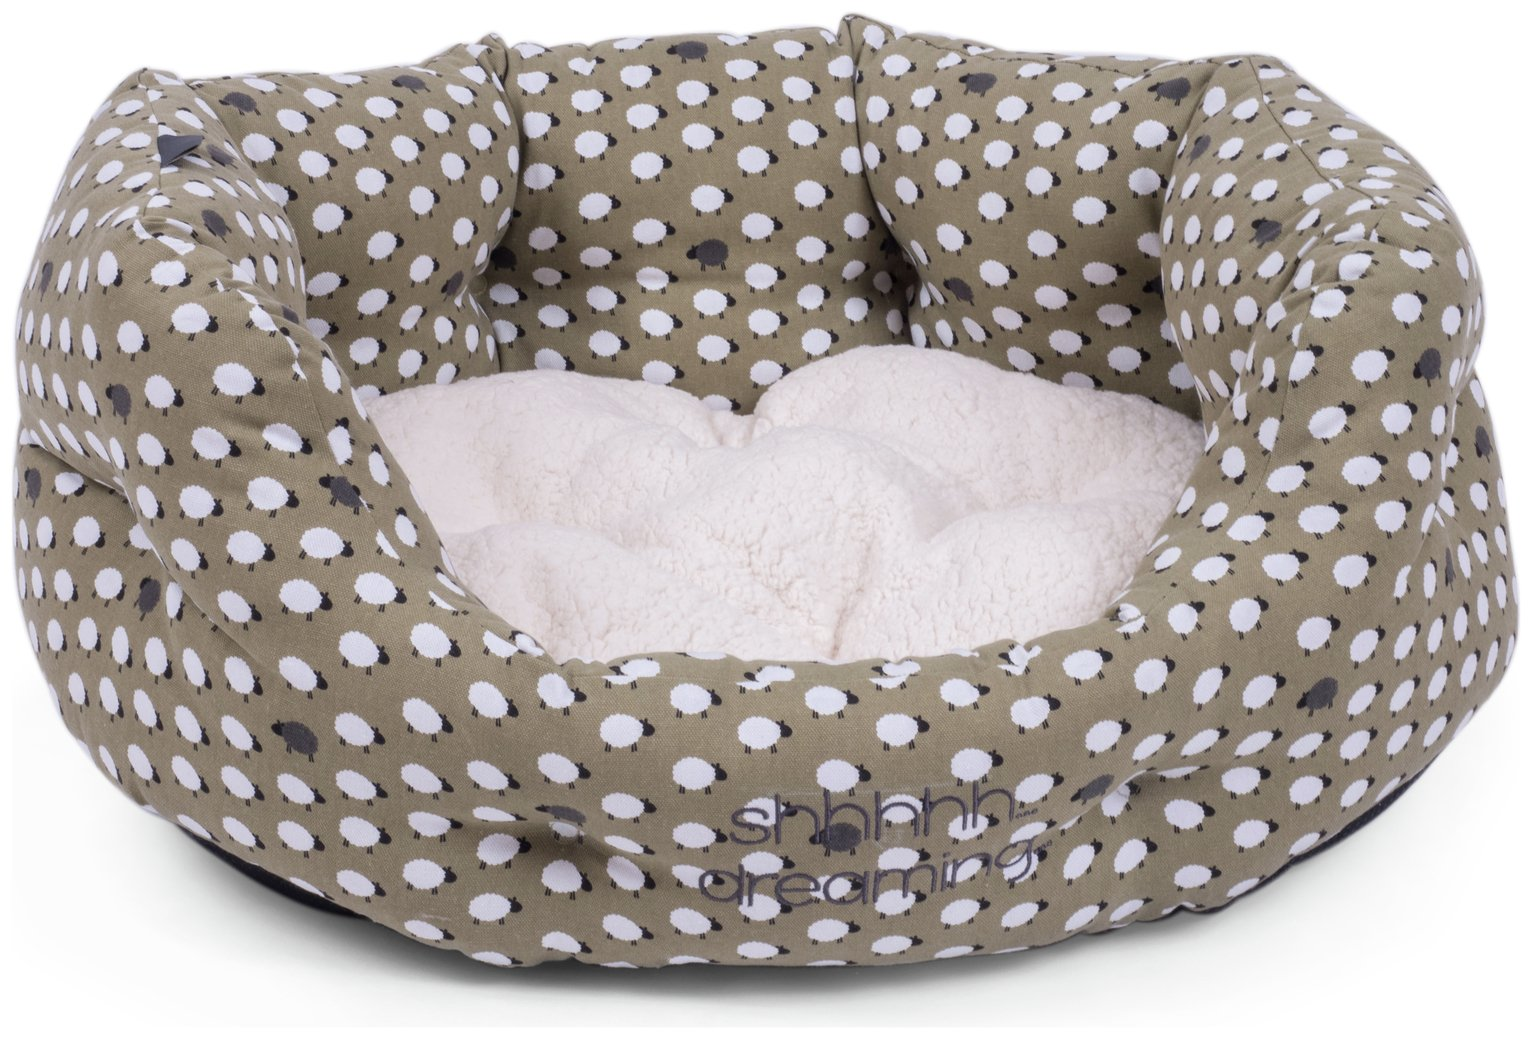 Petface Small Oval Bed - Sheep